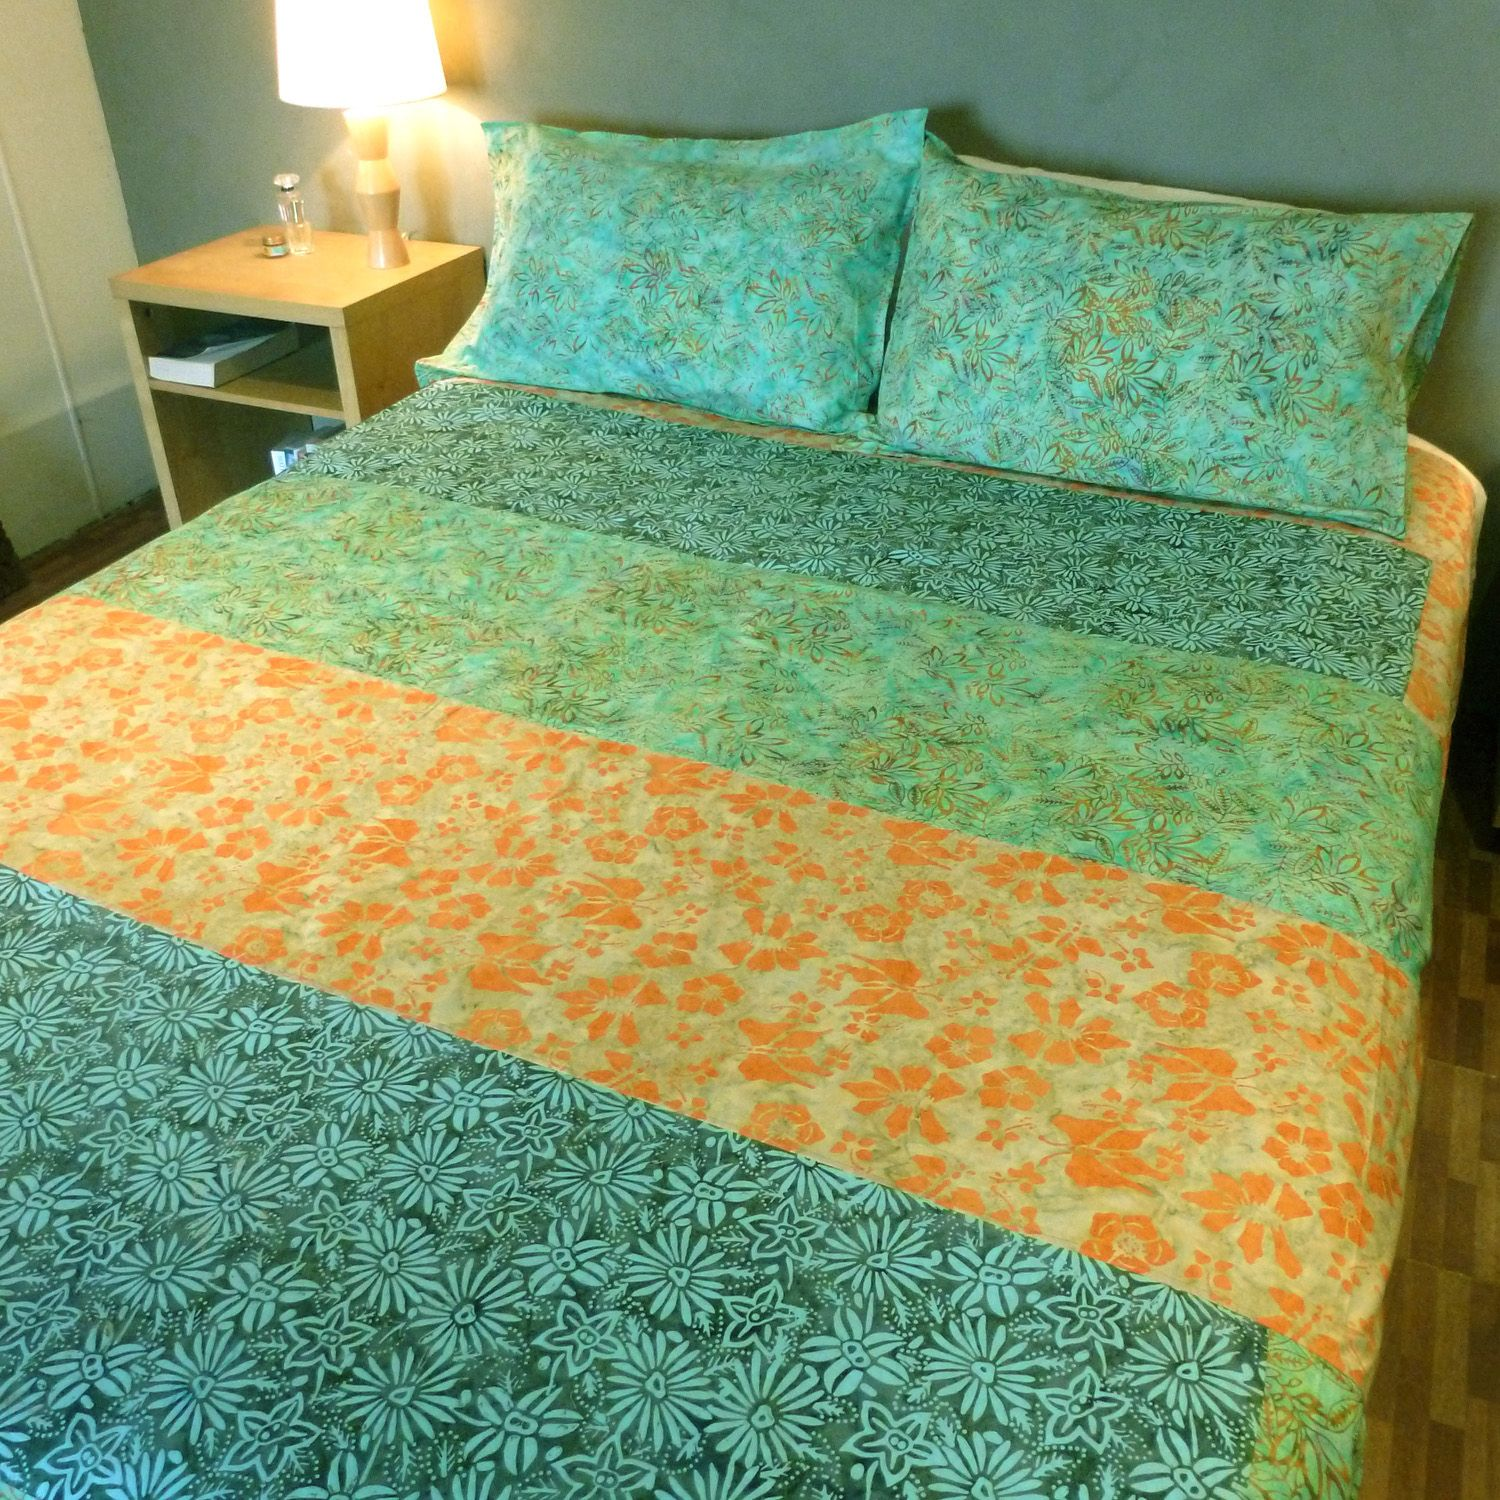 Queen size custom duvet cover set made from 100 handdyed